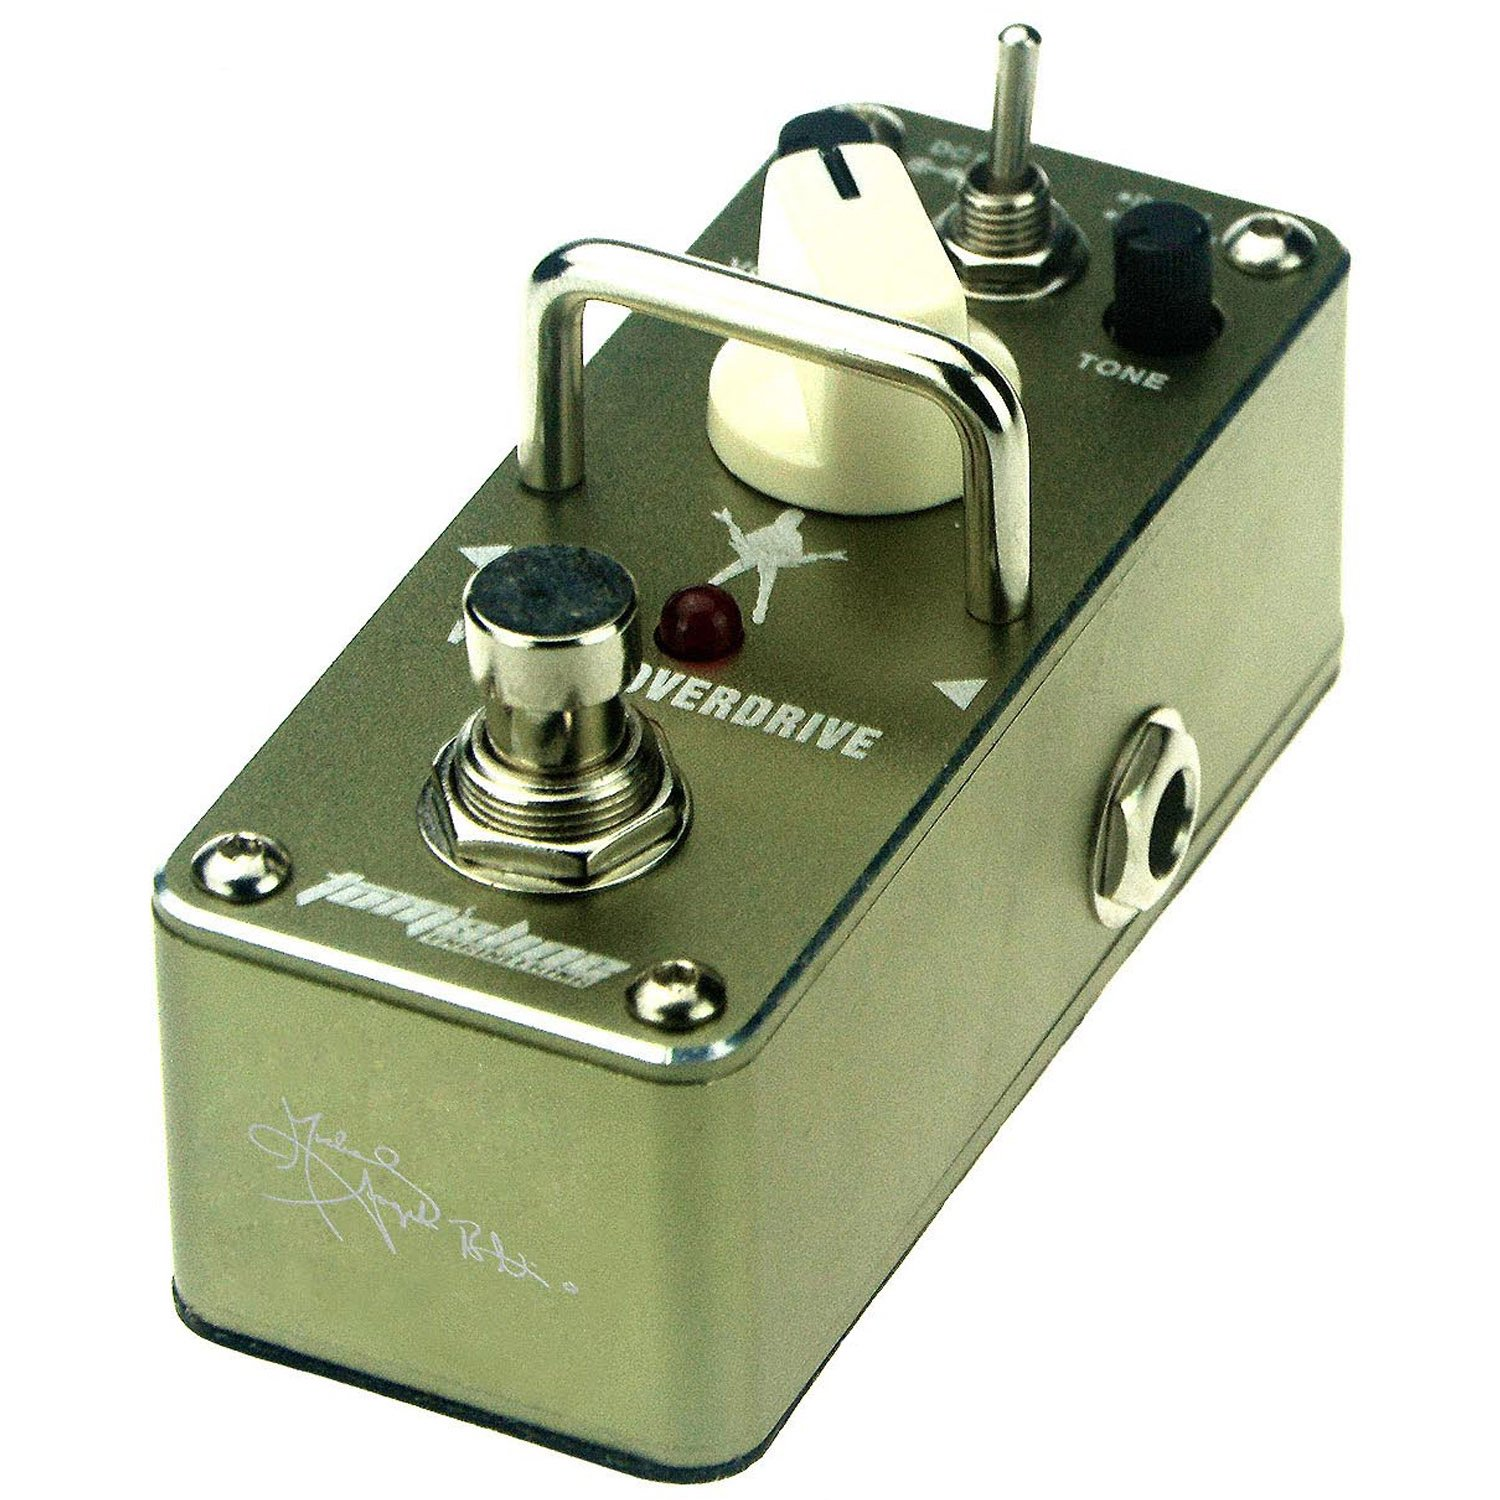 Tom'sline Engineering AGR3S Overdrive Boost Pedal